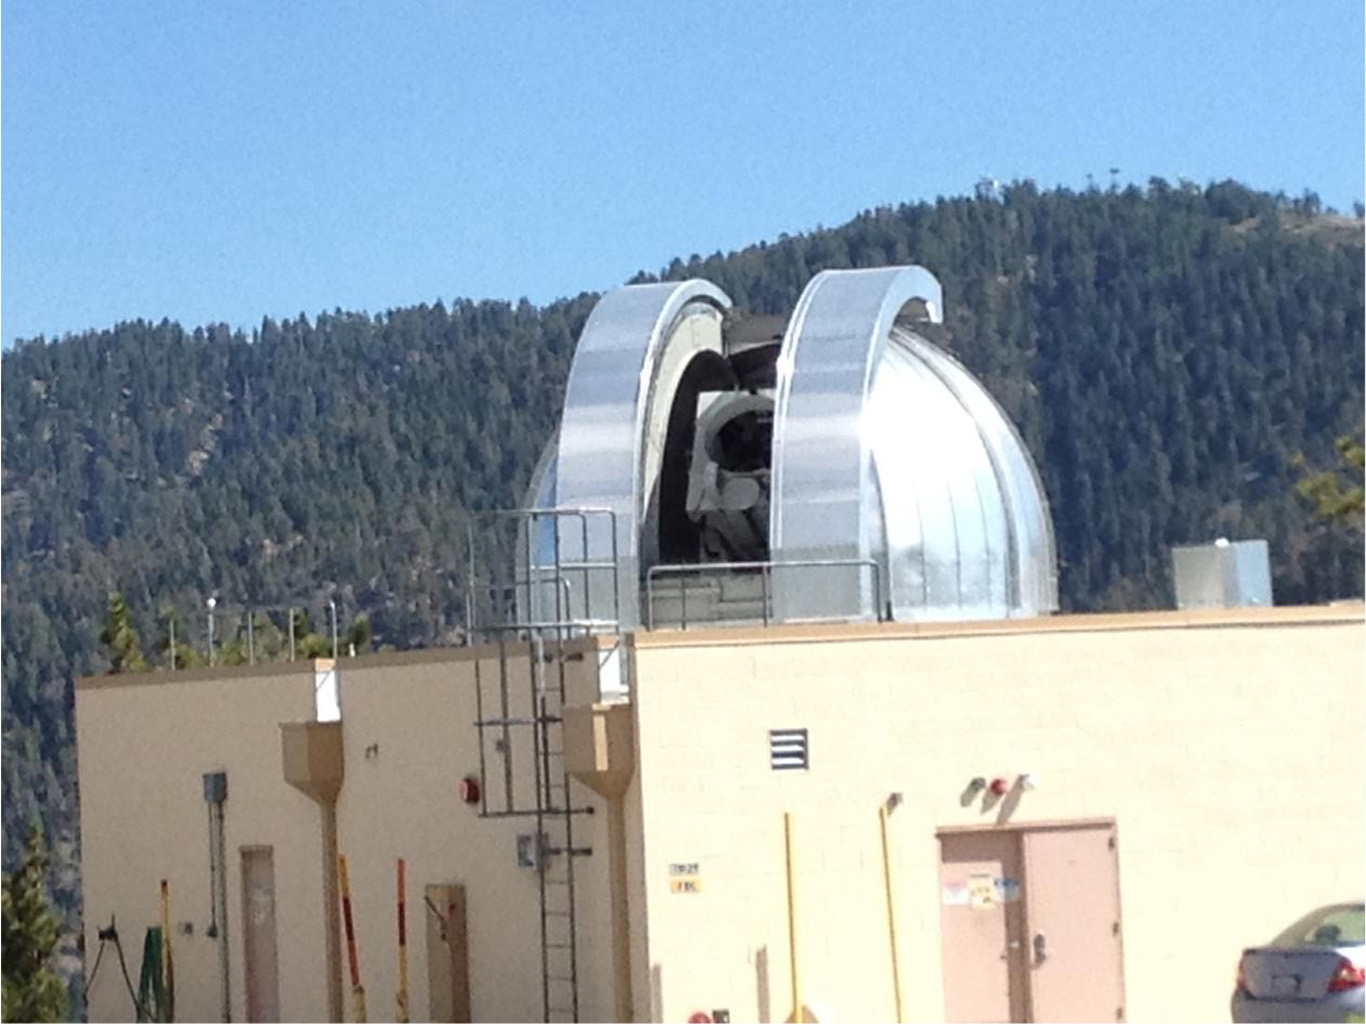 NASA's Optical Communications Telescope Laboratory (OCTL) dome is located in Table Mountain, California. It is used in conjunction with The Optical PAyload for Lasercomm Science (OPALS).